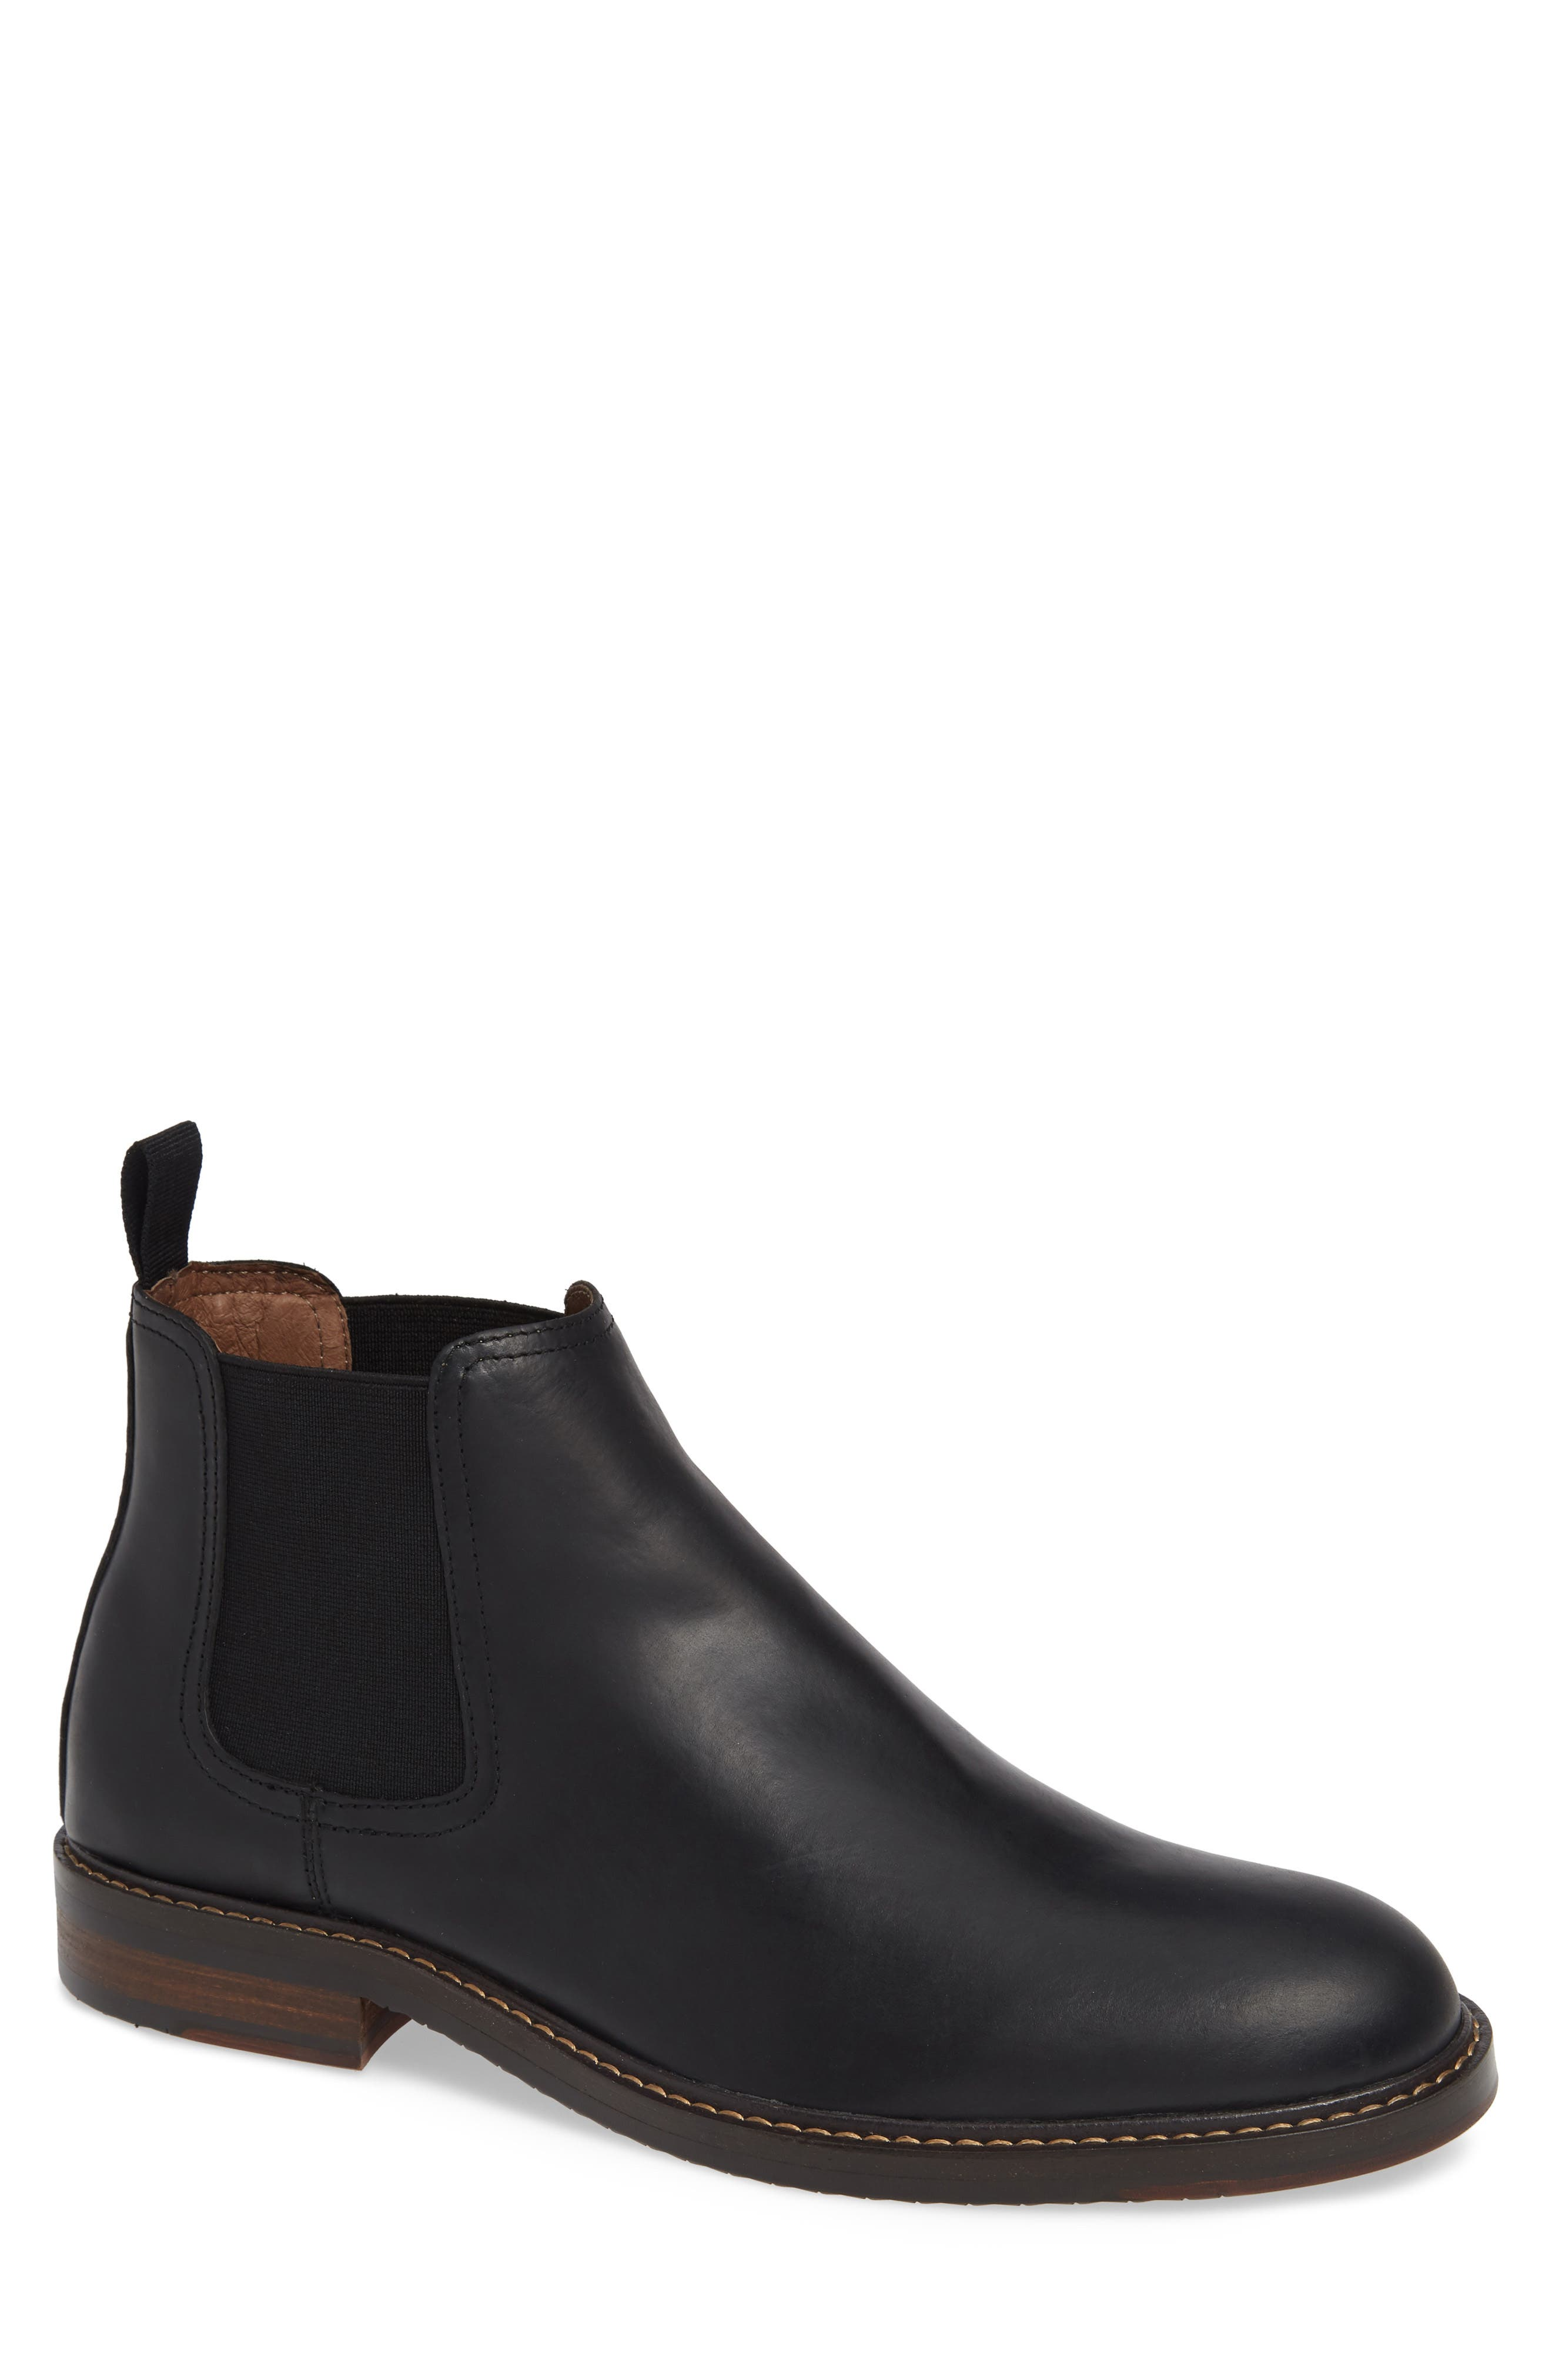 Brooks Chelsea Boot,                             Main thumbnail 1, color,                             BLACK LEATHER